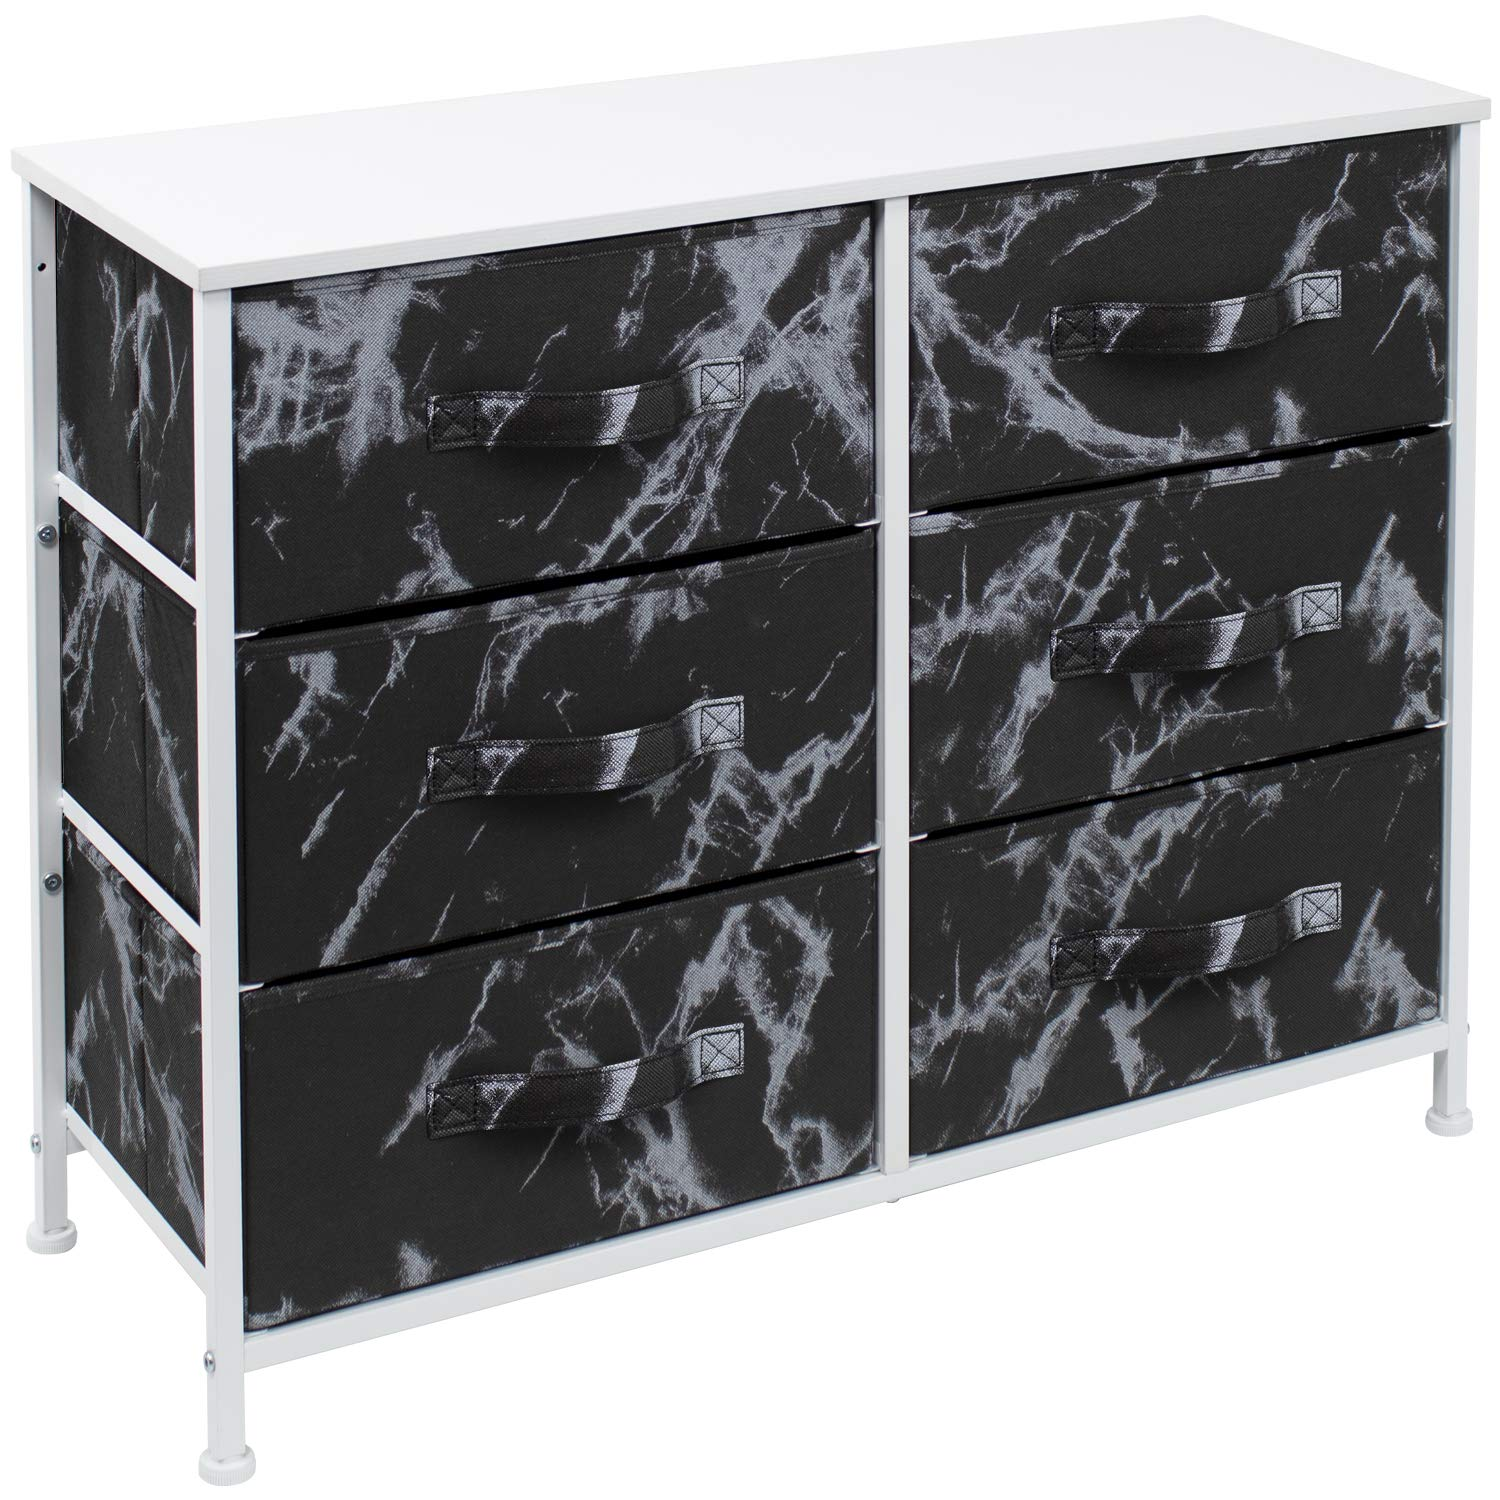 Sorbus Dresser with 6 Drawers - Furniture Storage Chest Tower Unit for Bedroom, Hallway, Closet, Office Organization - Steel Frame, Wood Top, Easy Pull Fabric Bins (Marble Black – White Frame)